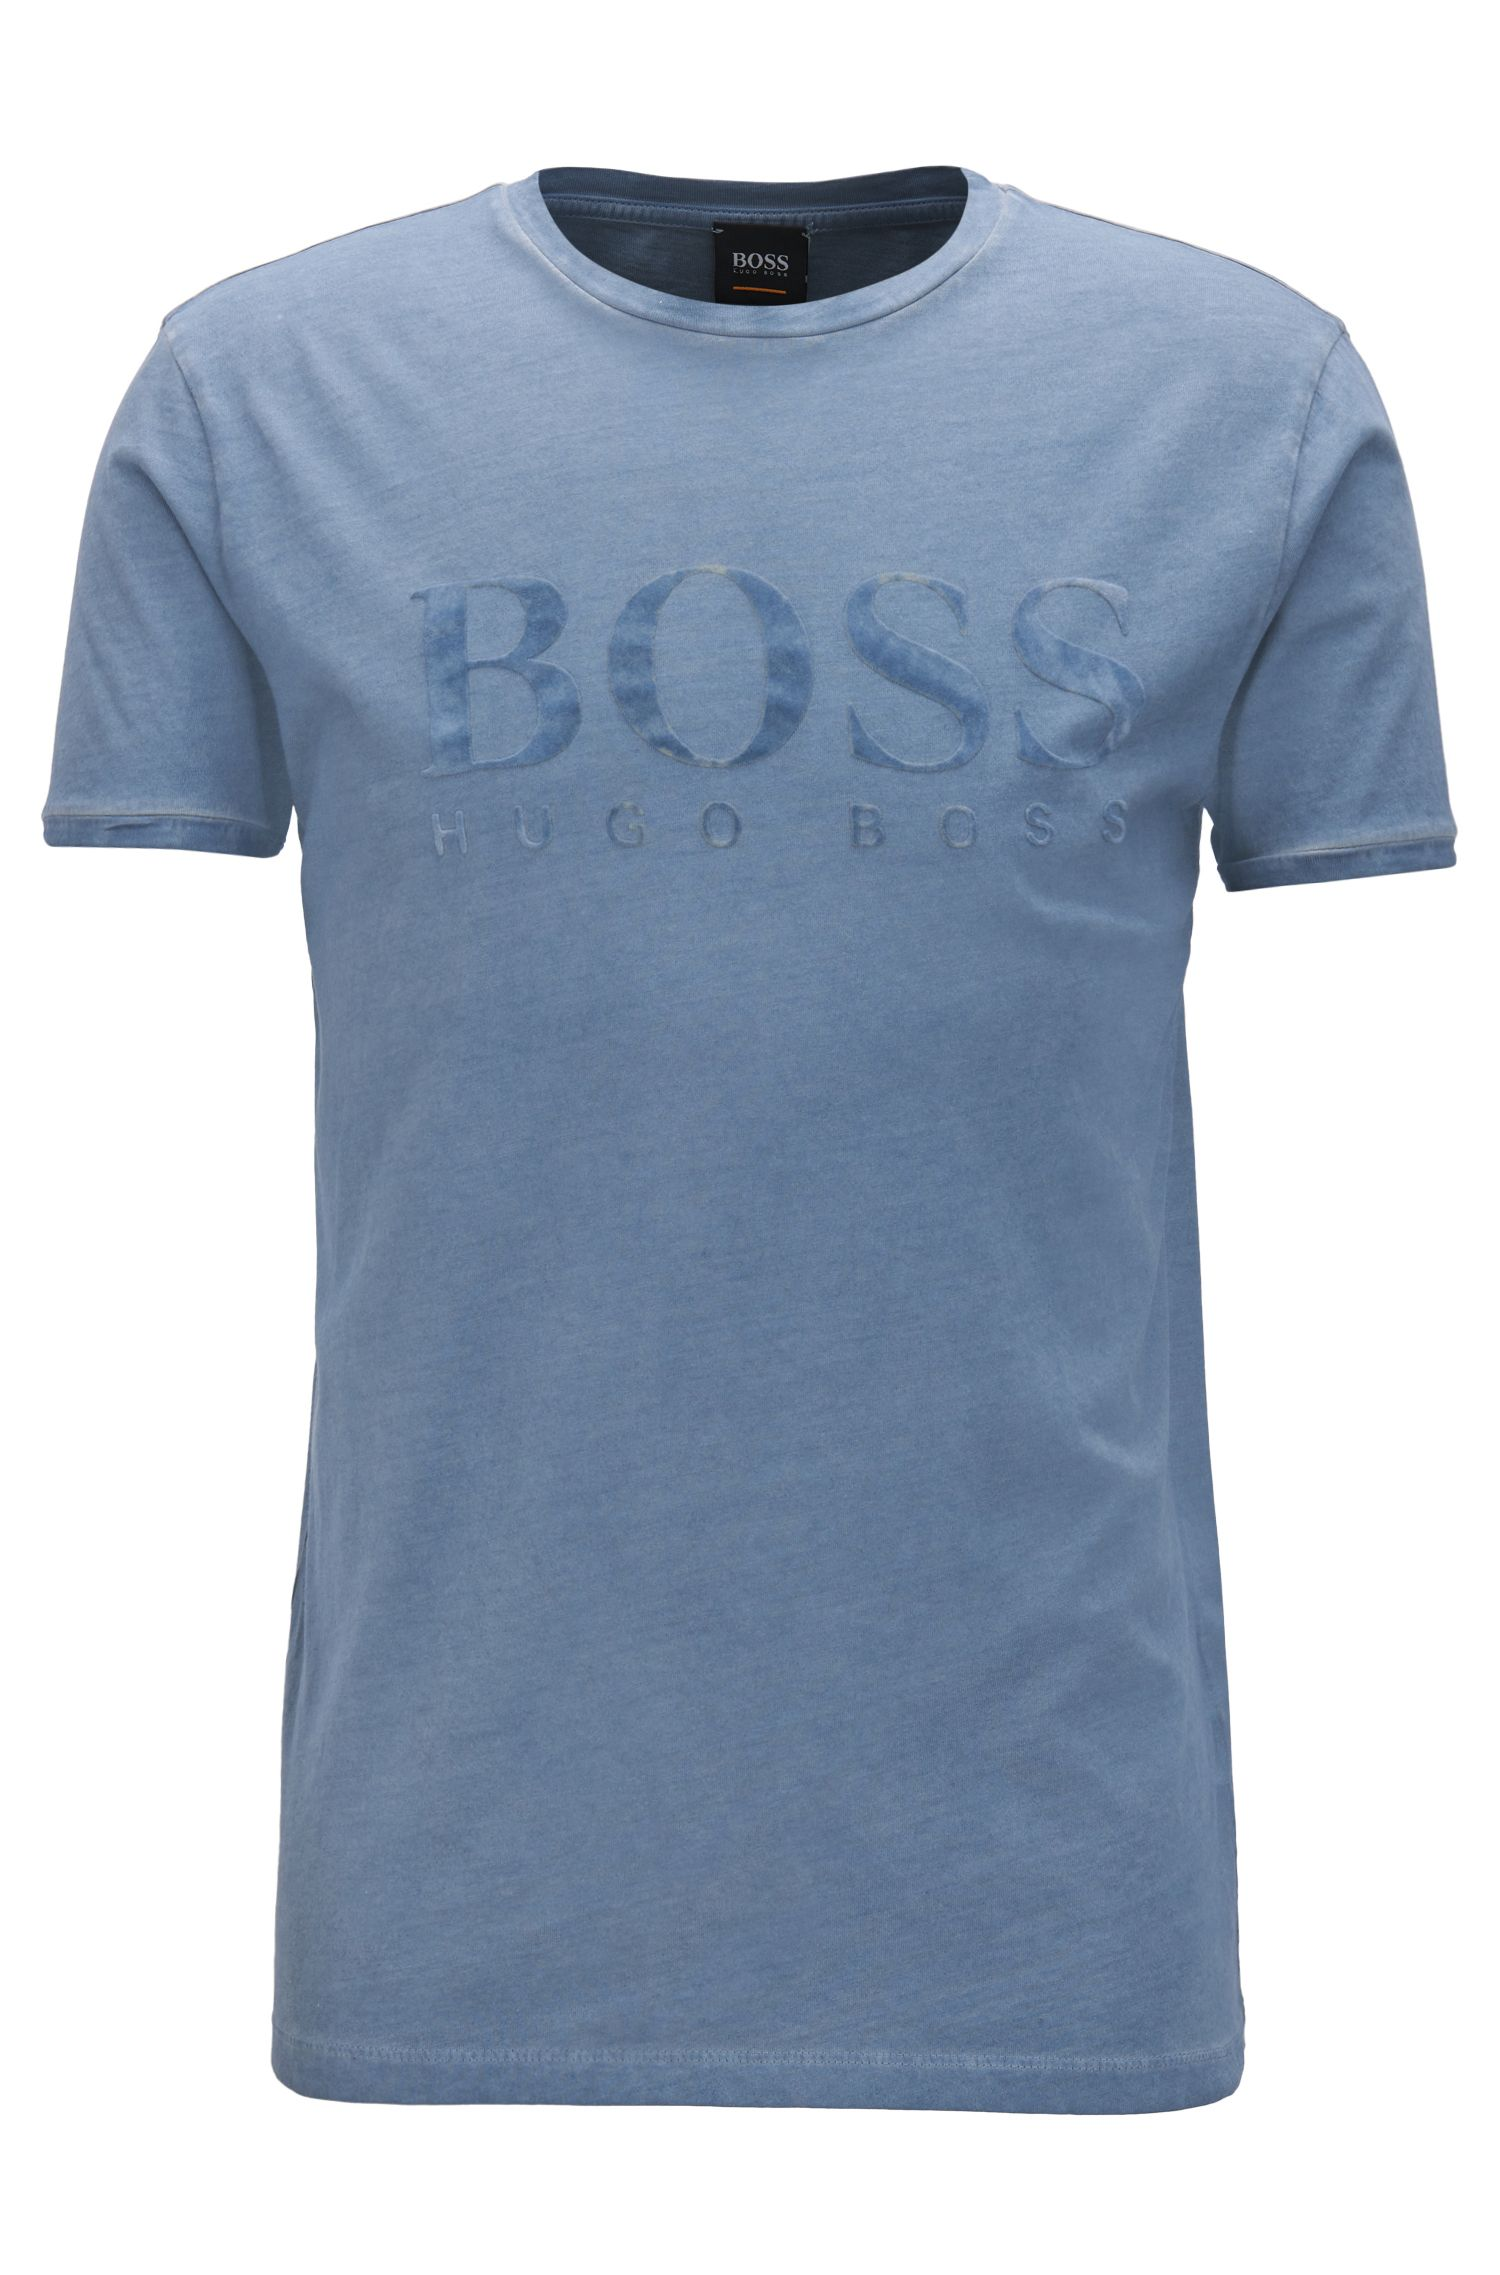 T-shirt in cotone con logo in stampa flock